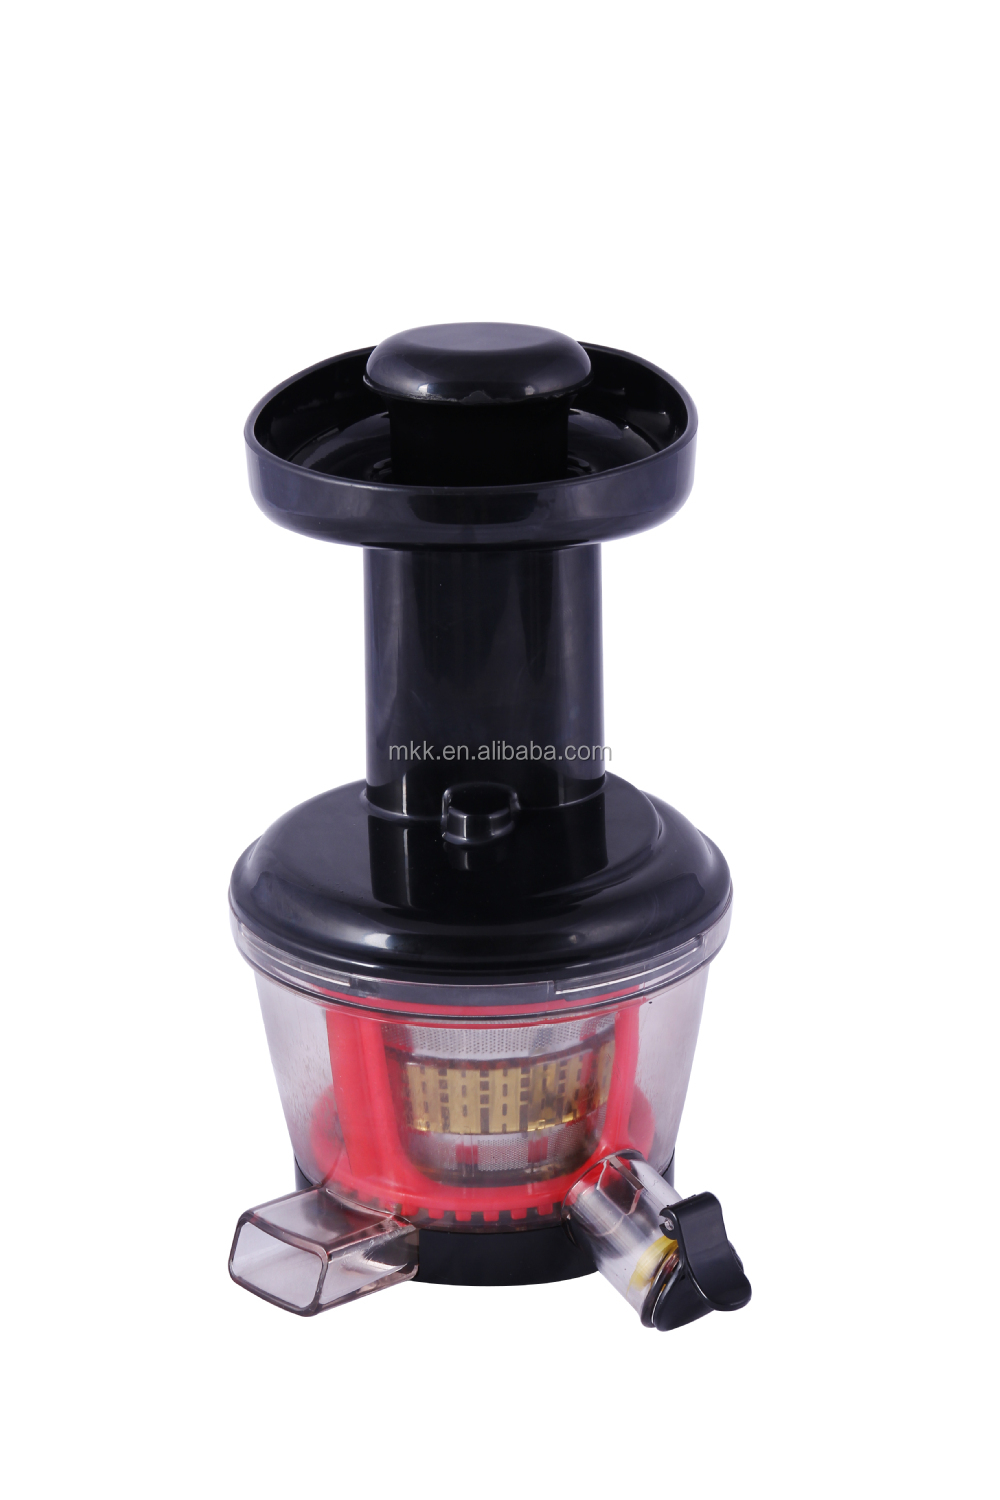 New Products Slow Juicer,Household Juicer With Ce Approval - Buy Slow Juicer,Household Juicer ...